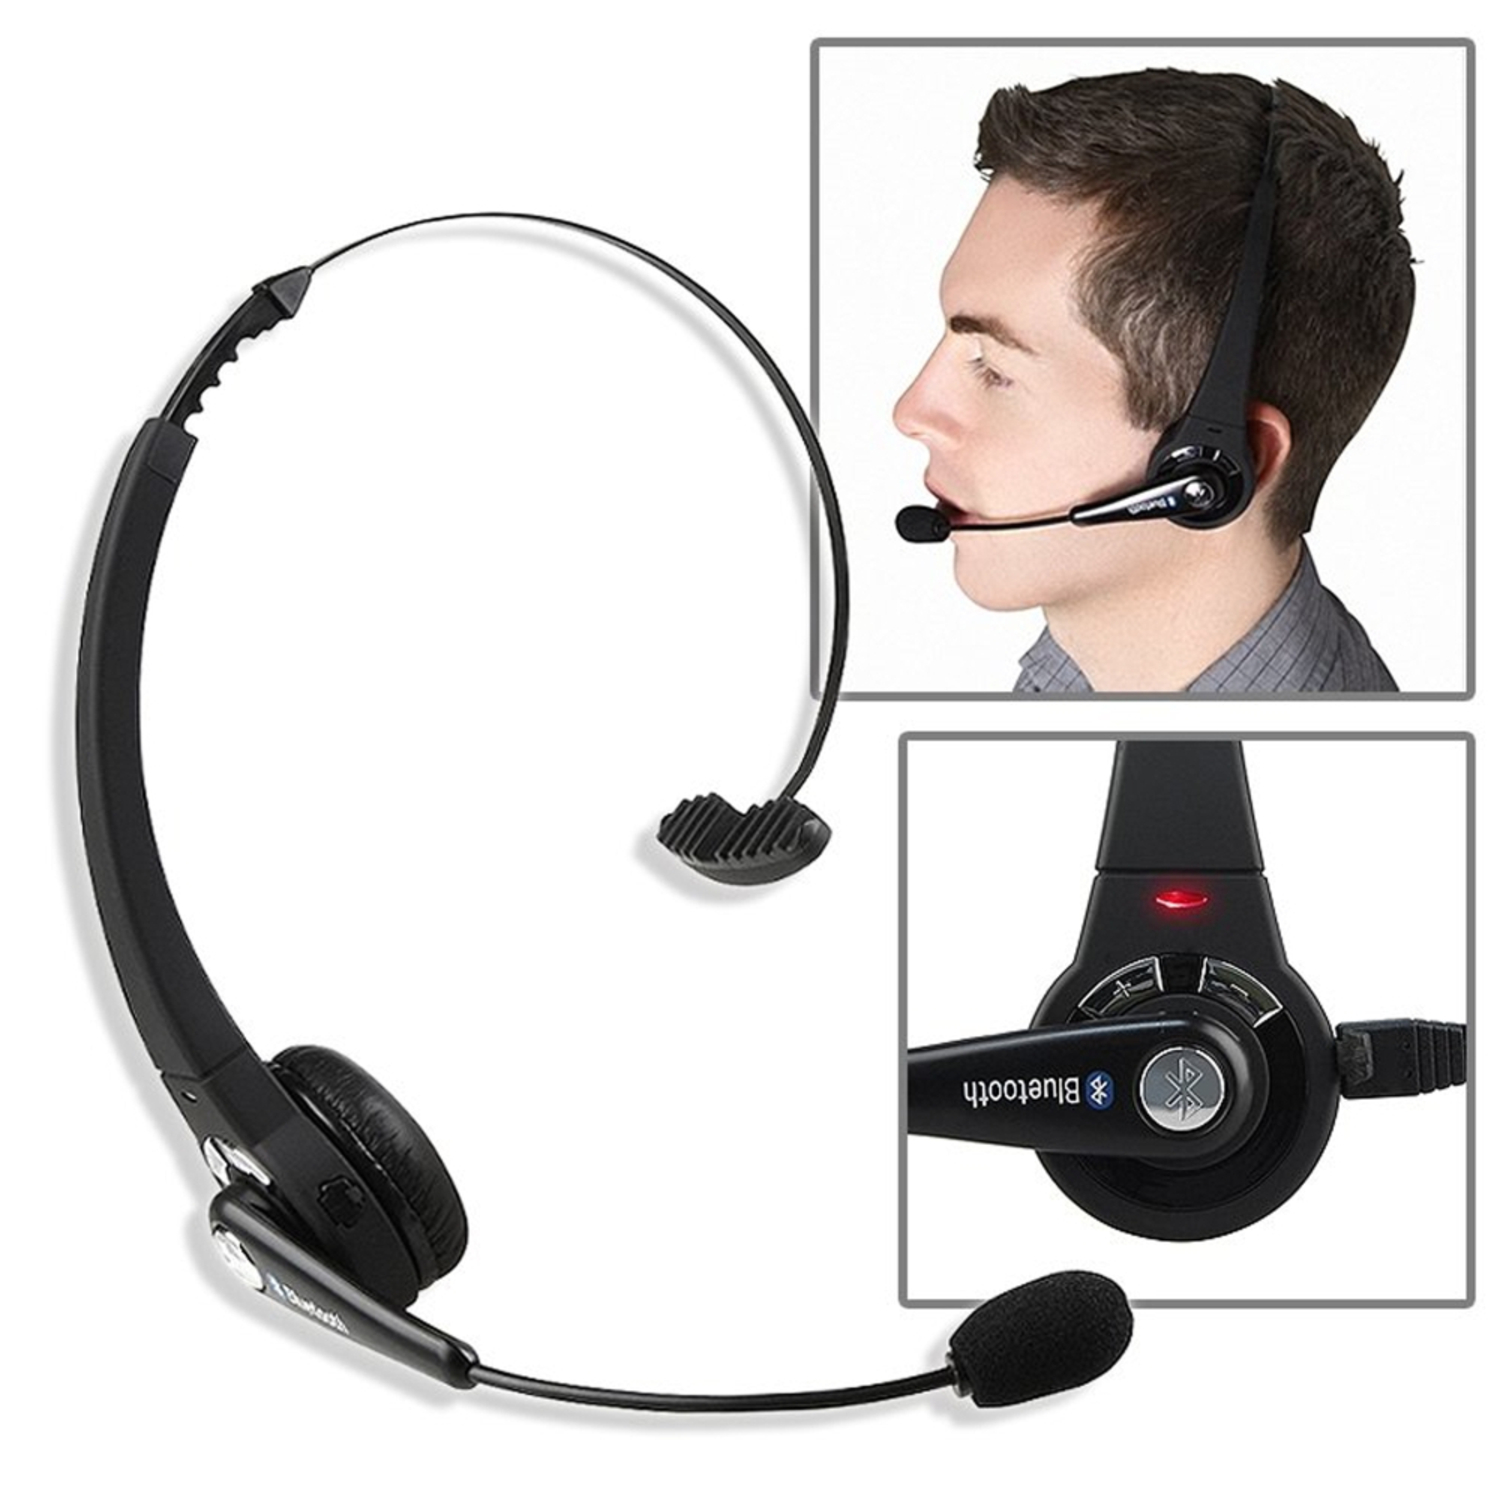 playstation 3 headset how to connect